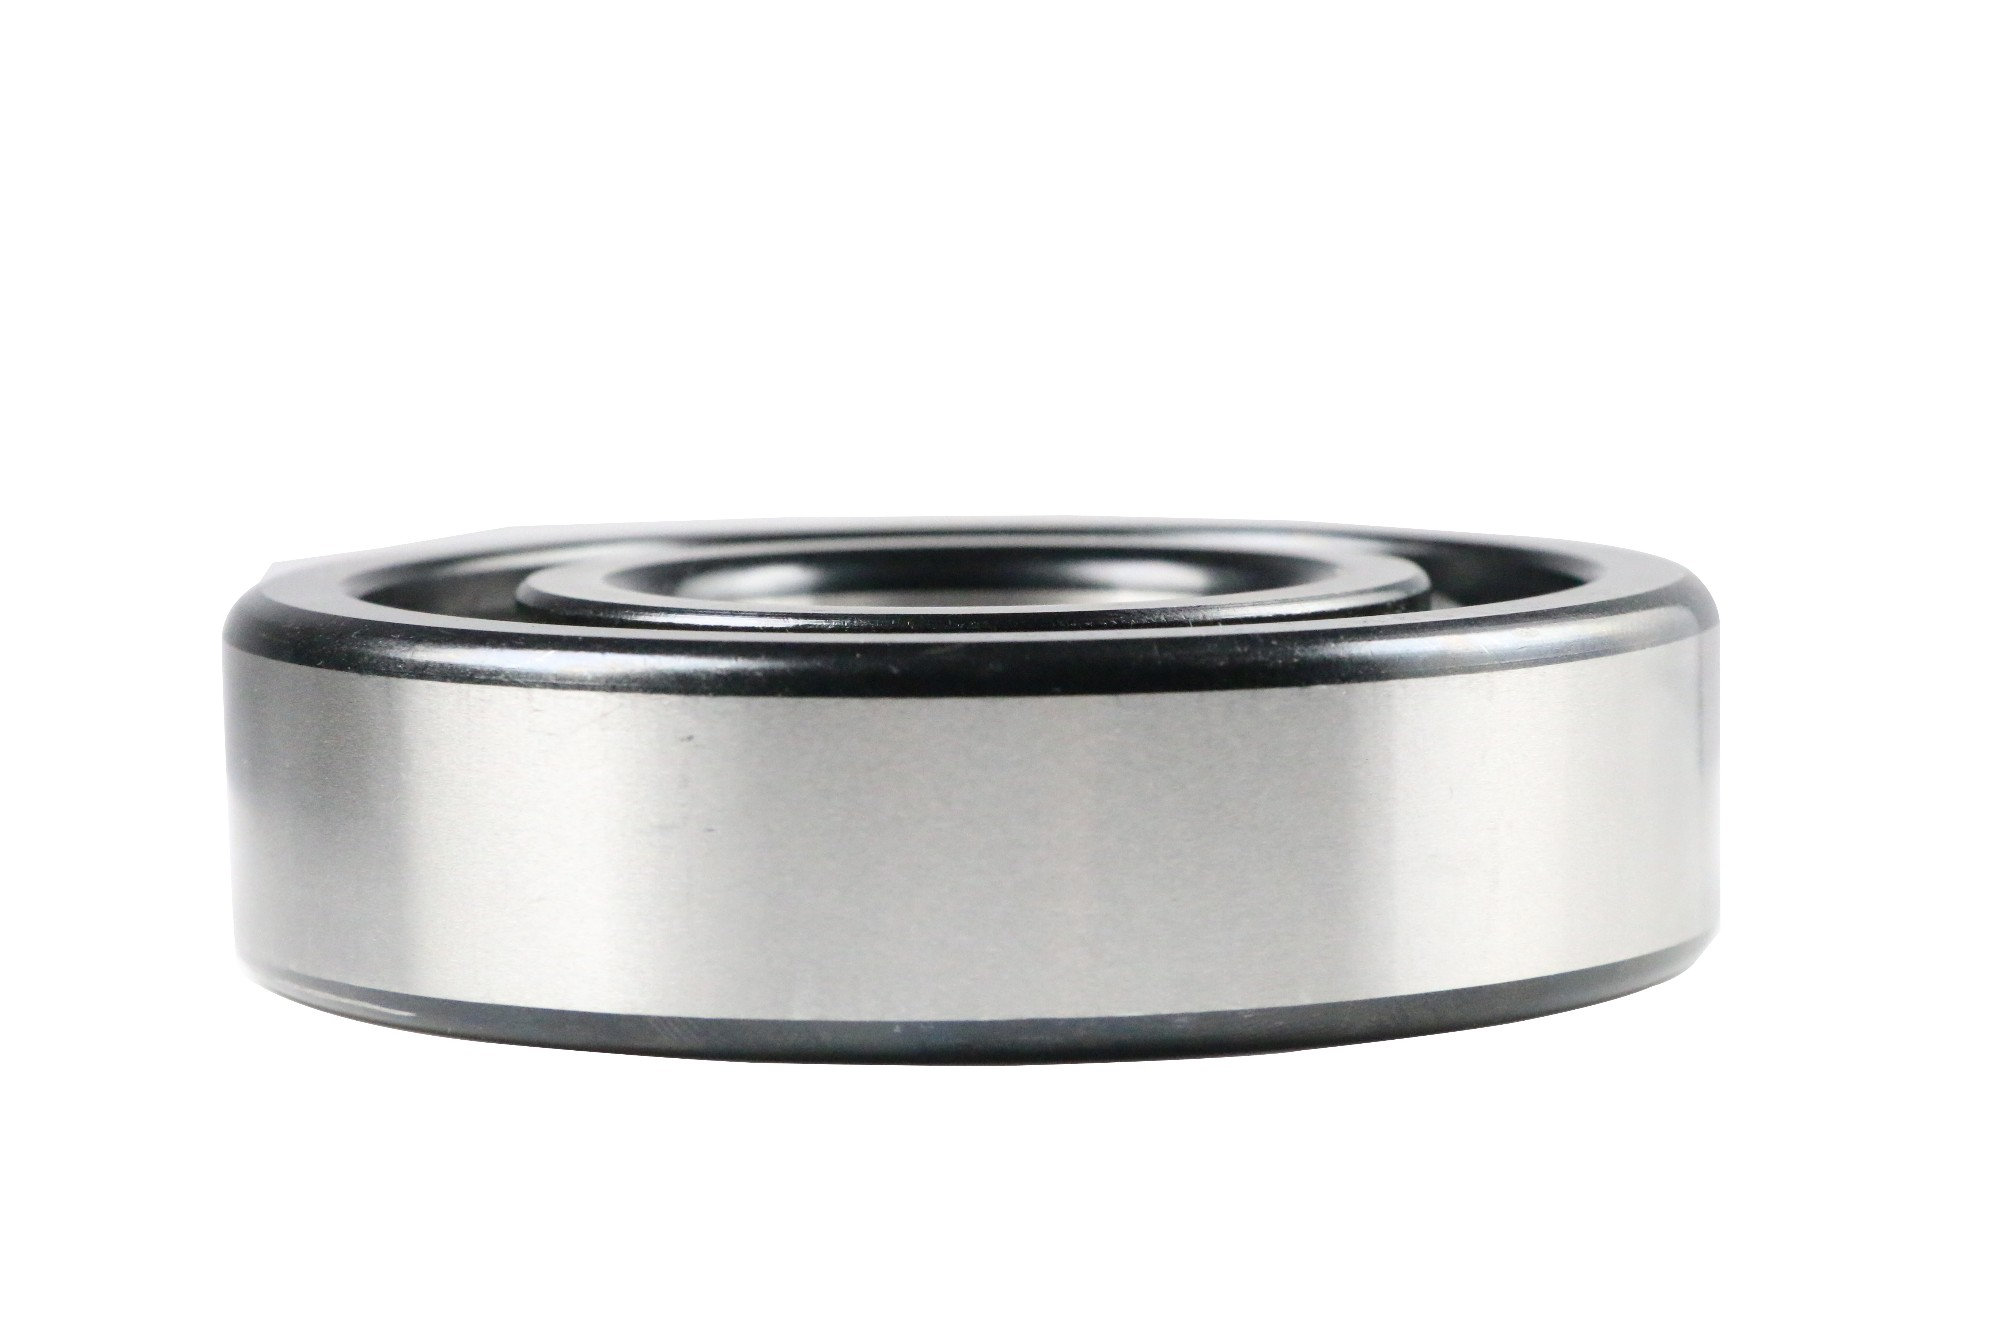 How to properly install non-standard bearings?